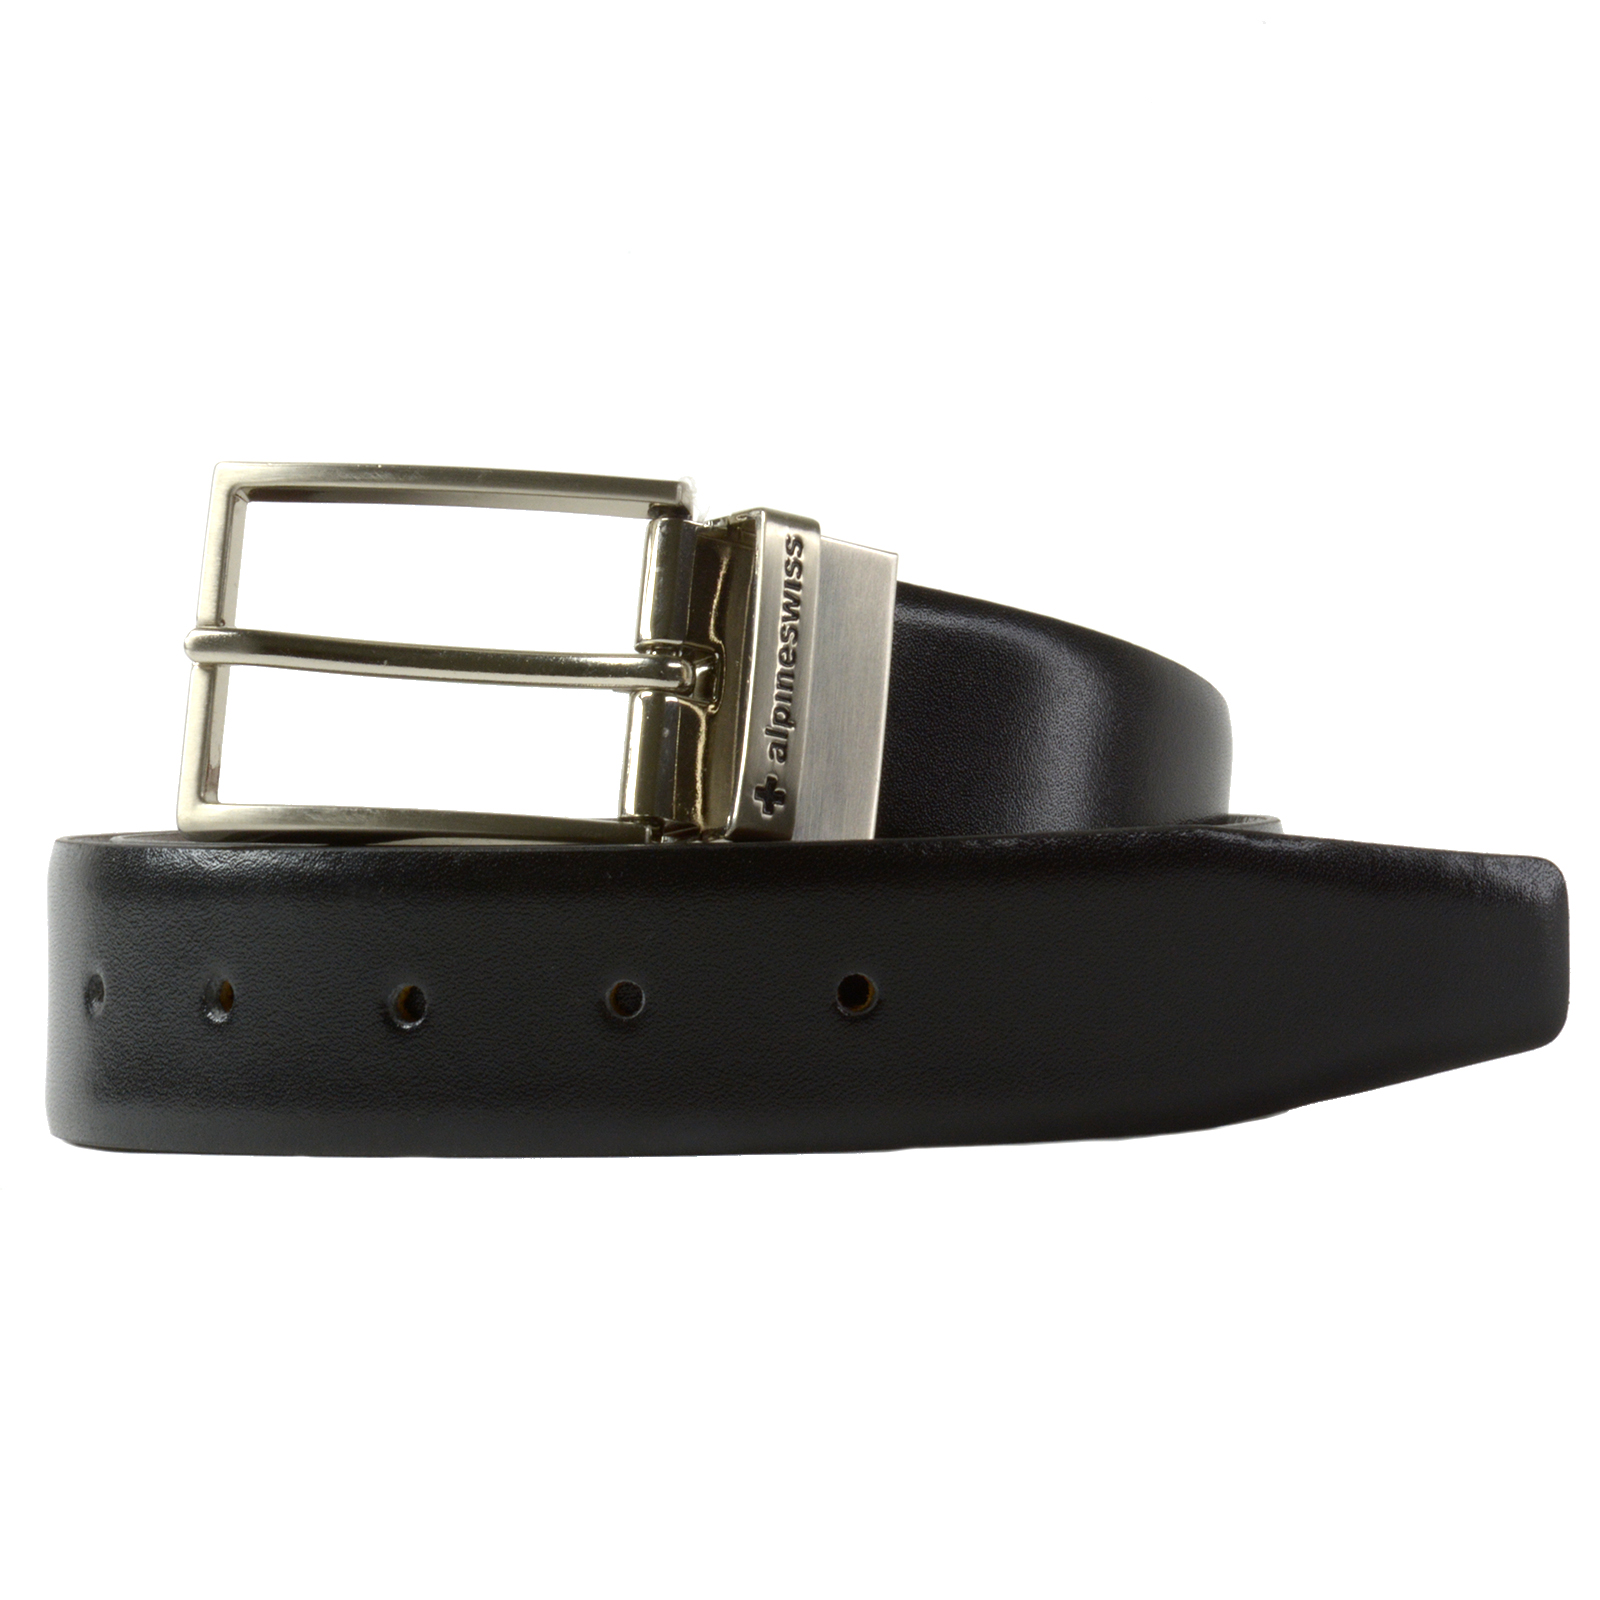 Alpine-Swiss-Mens-Dress-Belt-Reversible-Black-Brown-Leather-Imported-from-Spain thumbnail 19